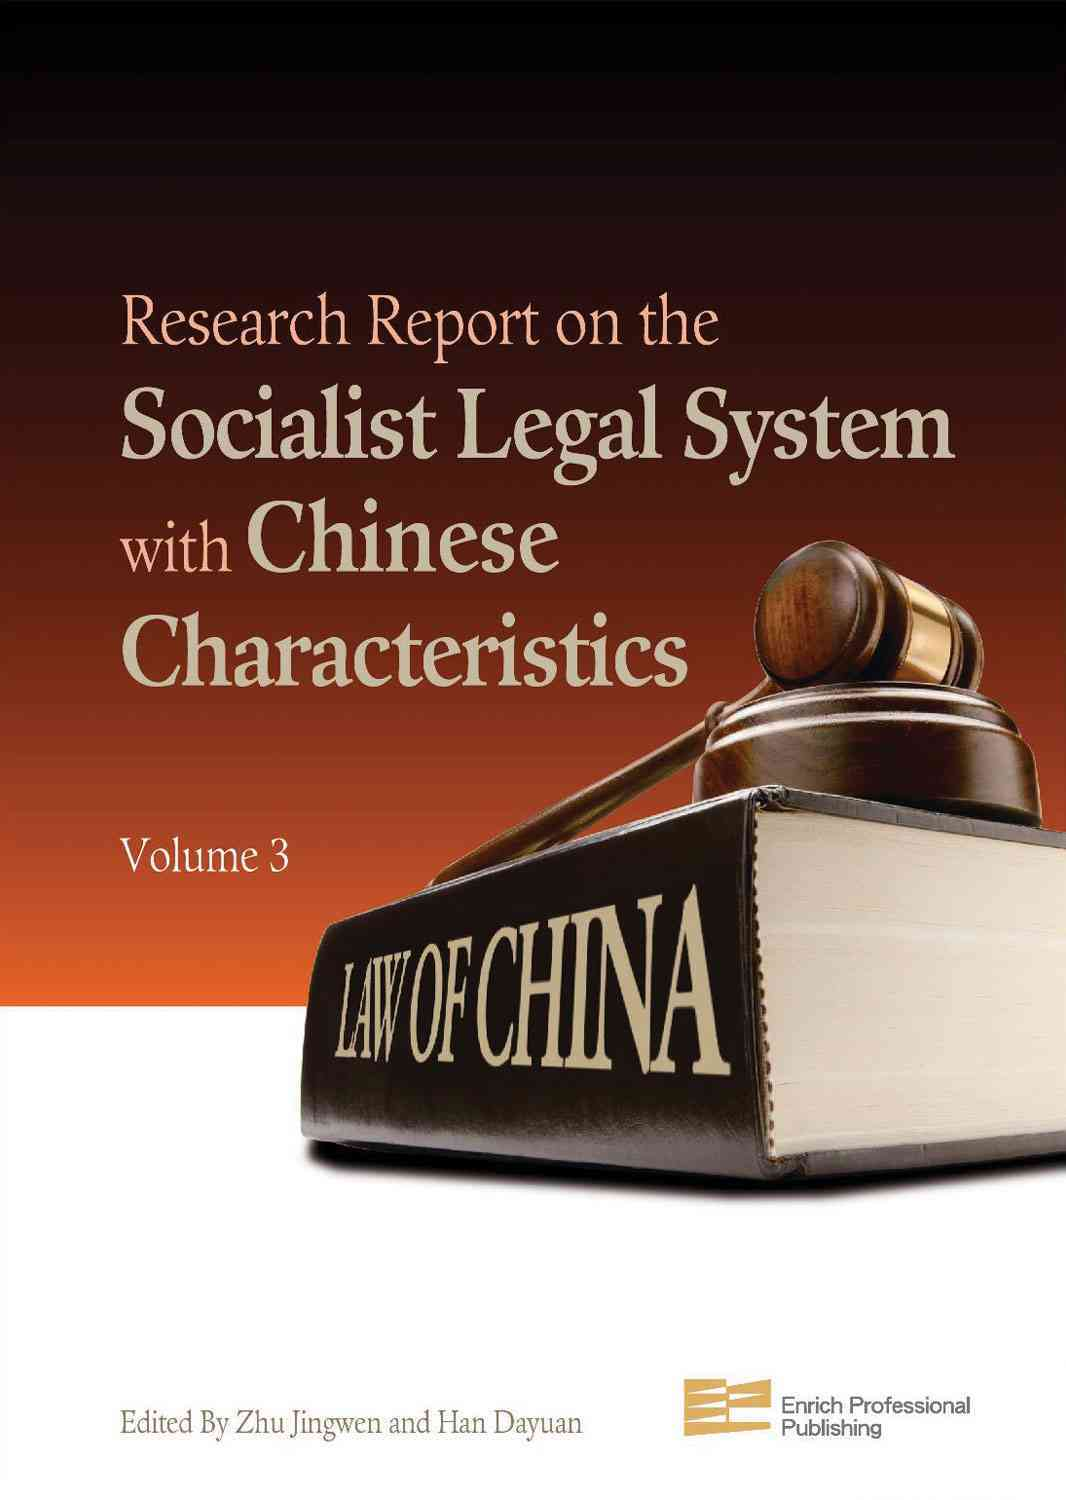 Research Report on the Socialist Legal System With Chinese Characteristics By Zhu, Jingwen/ Han, Dayuan